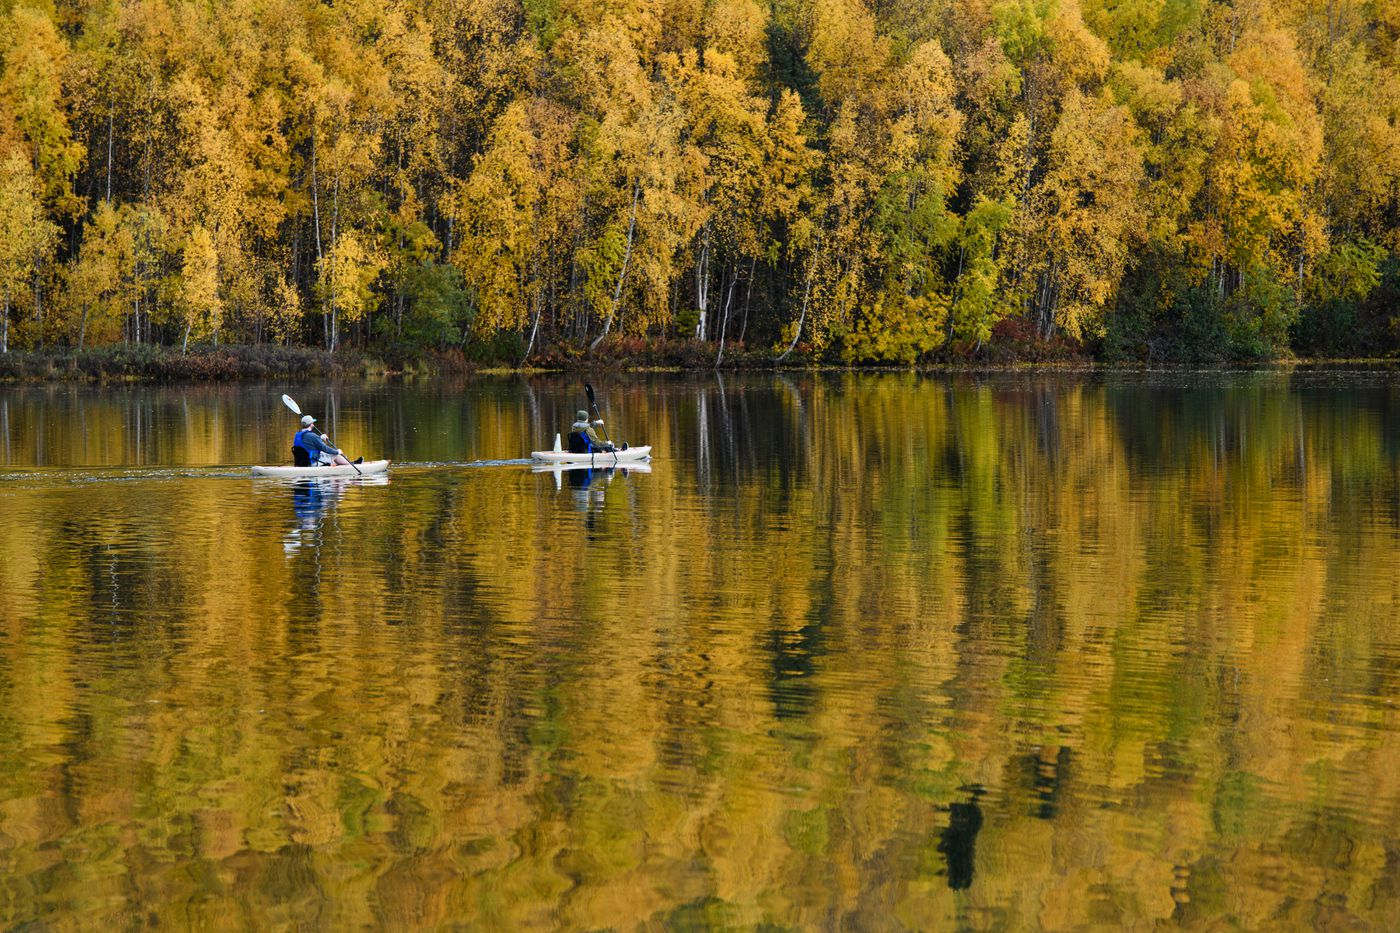 Fall colors reflect on Mirror Lake in Chugiak as kayakers paddle across on September 25, 2020. (Marc Lester / ADN)